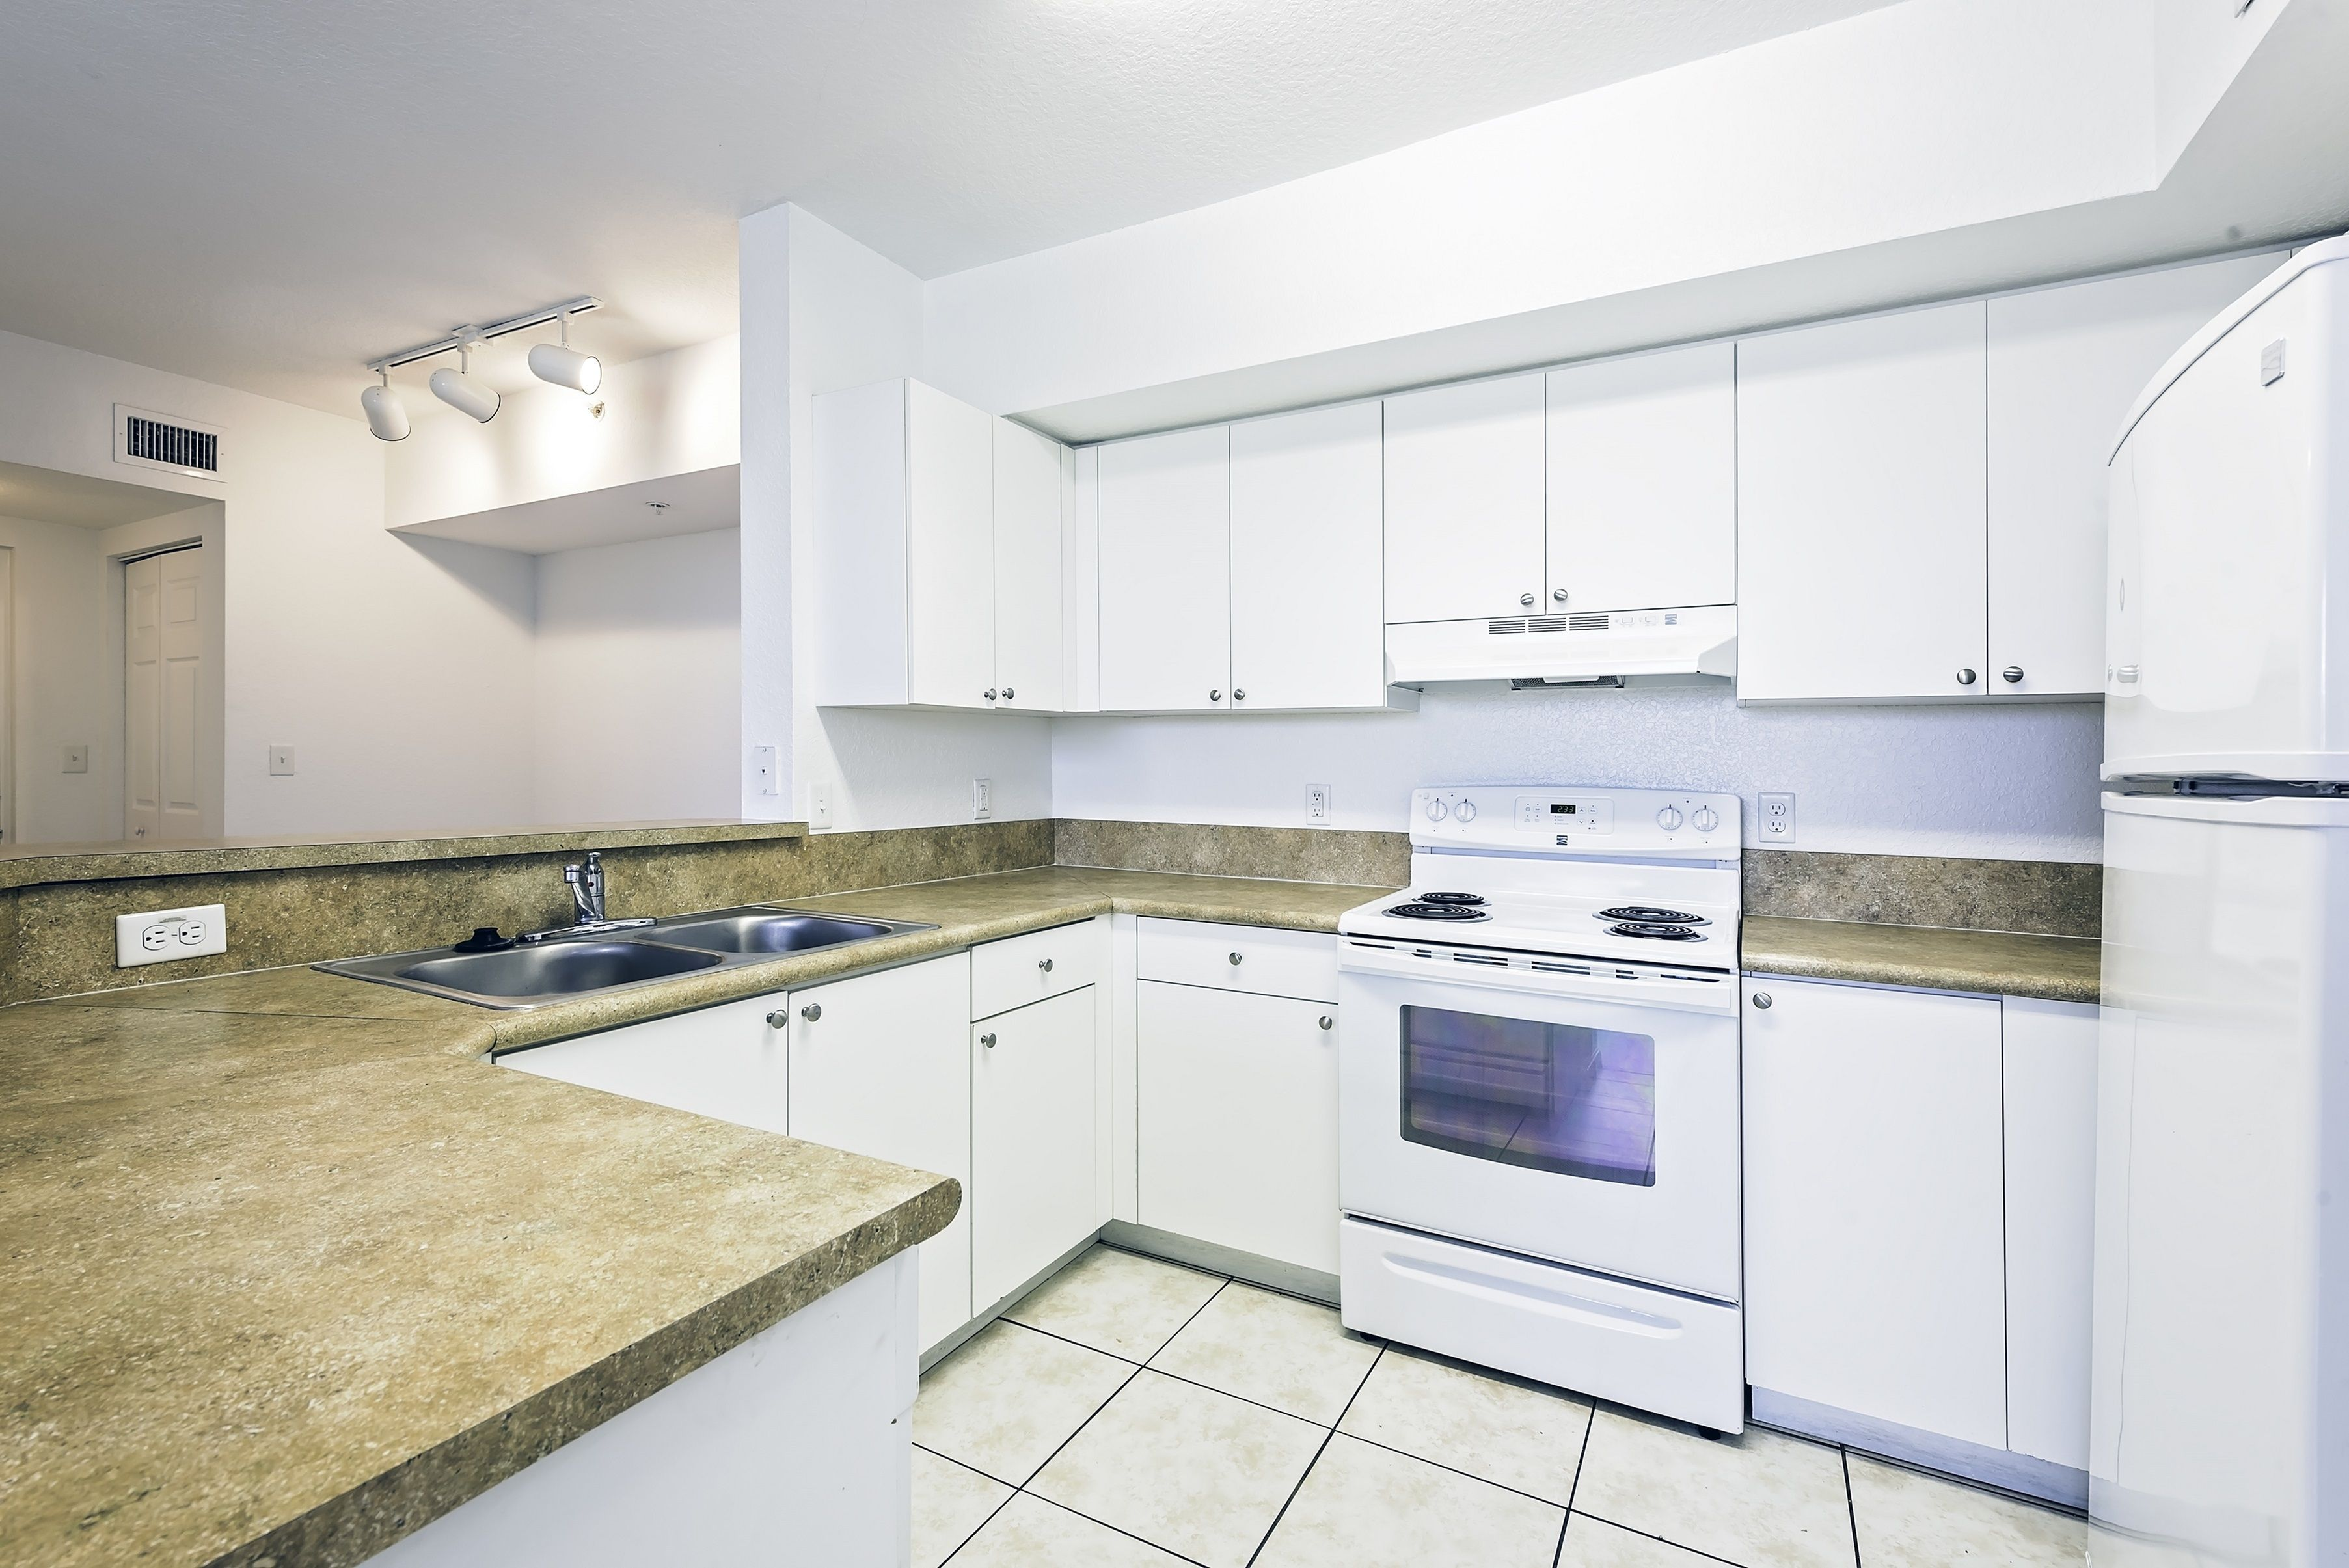 Income Based Apartments For Rent In Virginia Beach